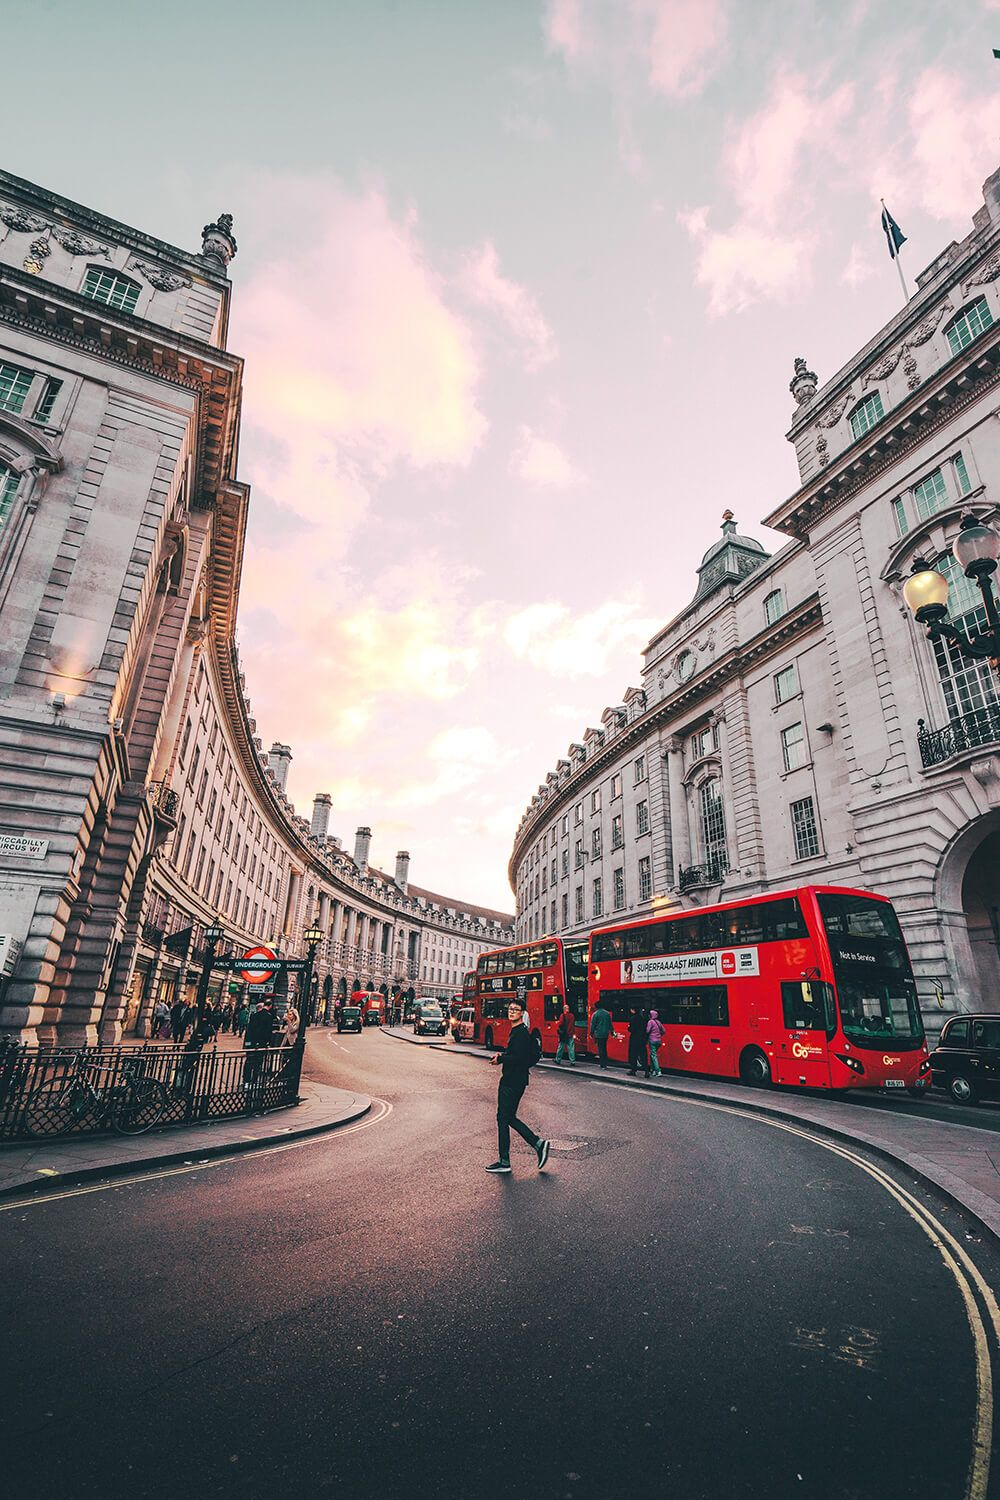 Visiting London For The First Time: Here Are 10 Things You Can't Miss - Avenly Lane Travel